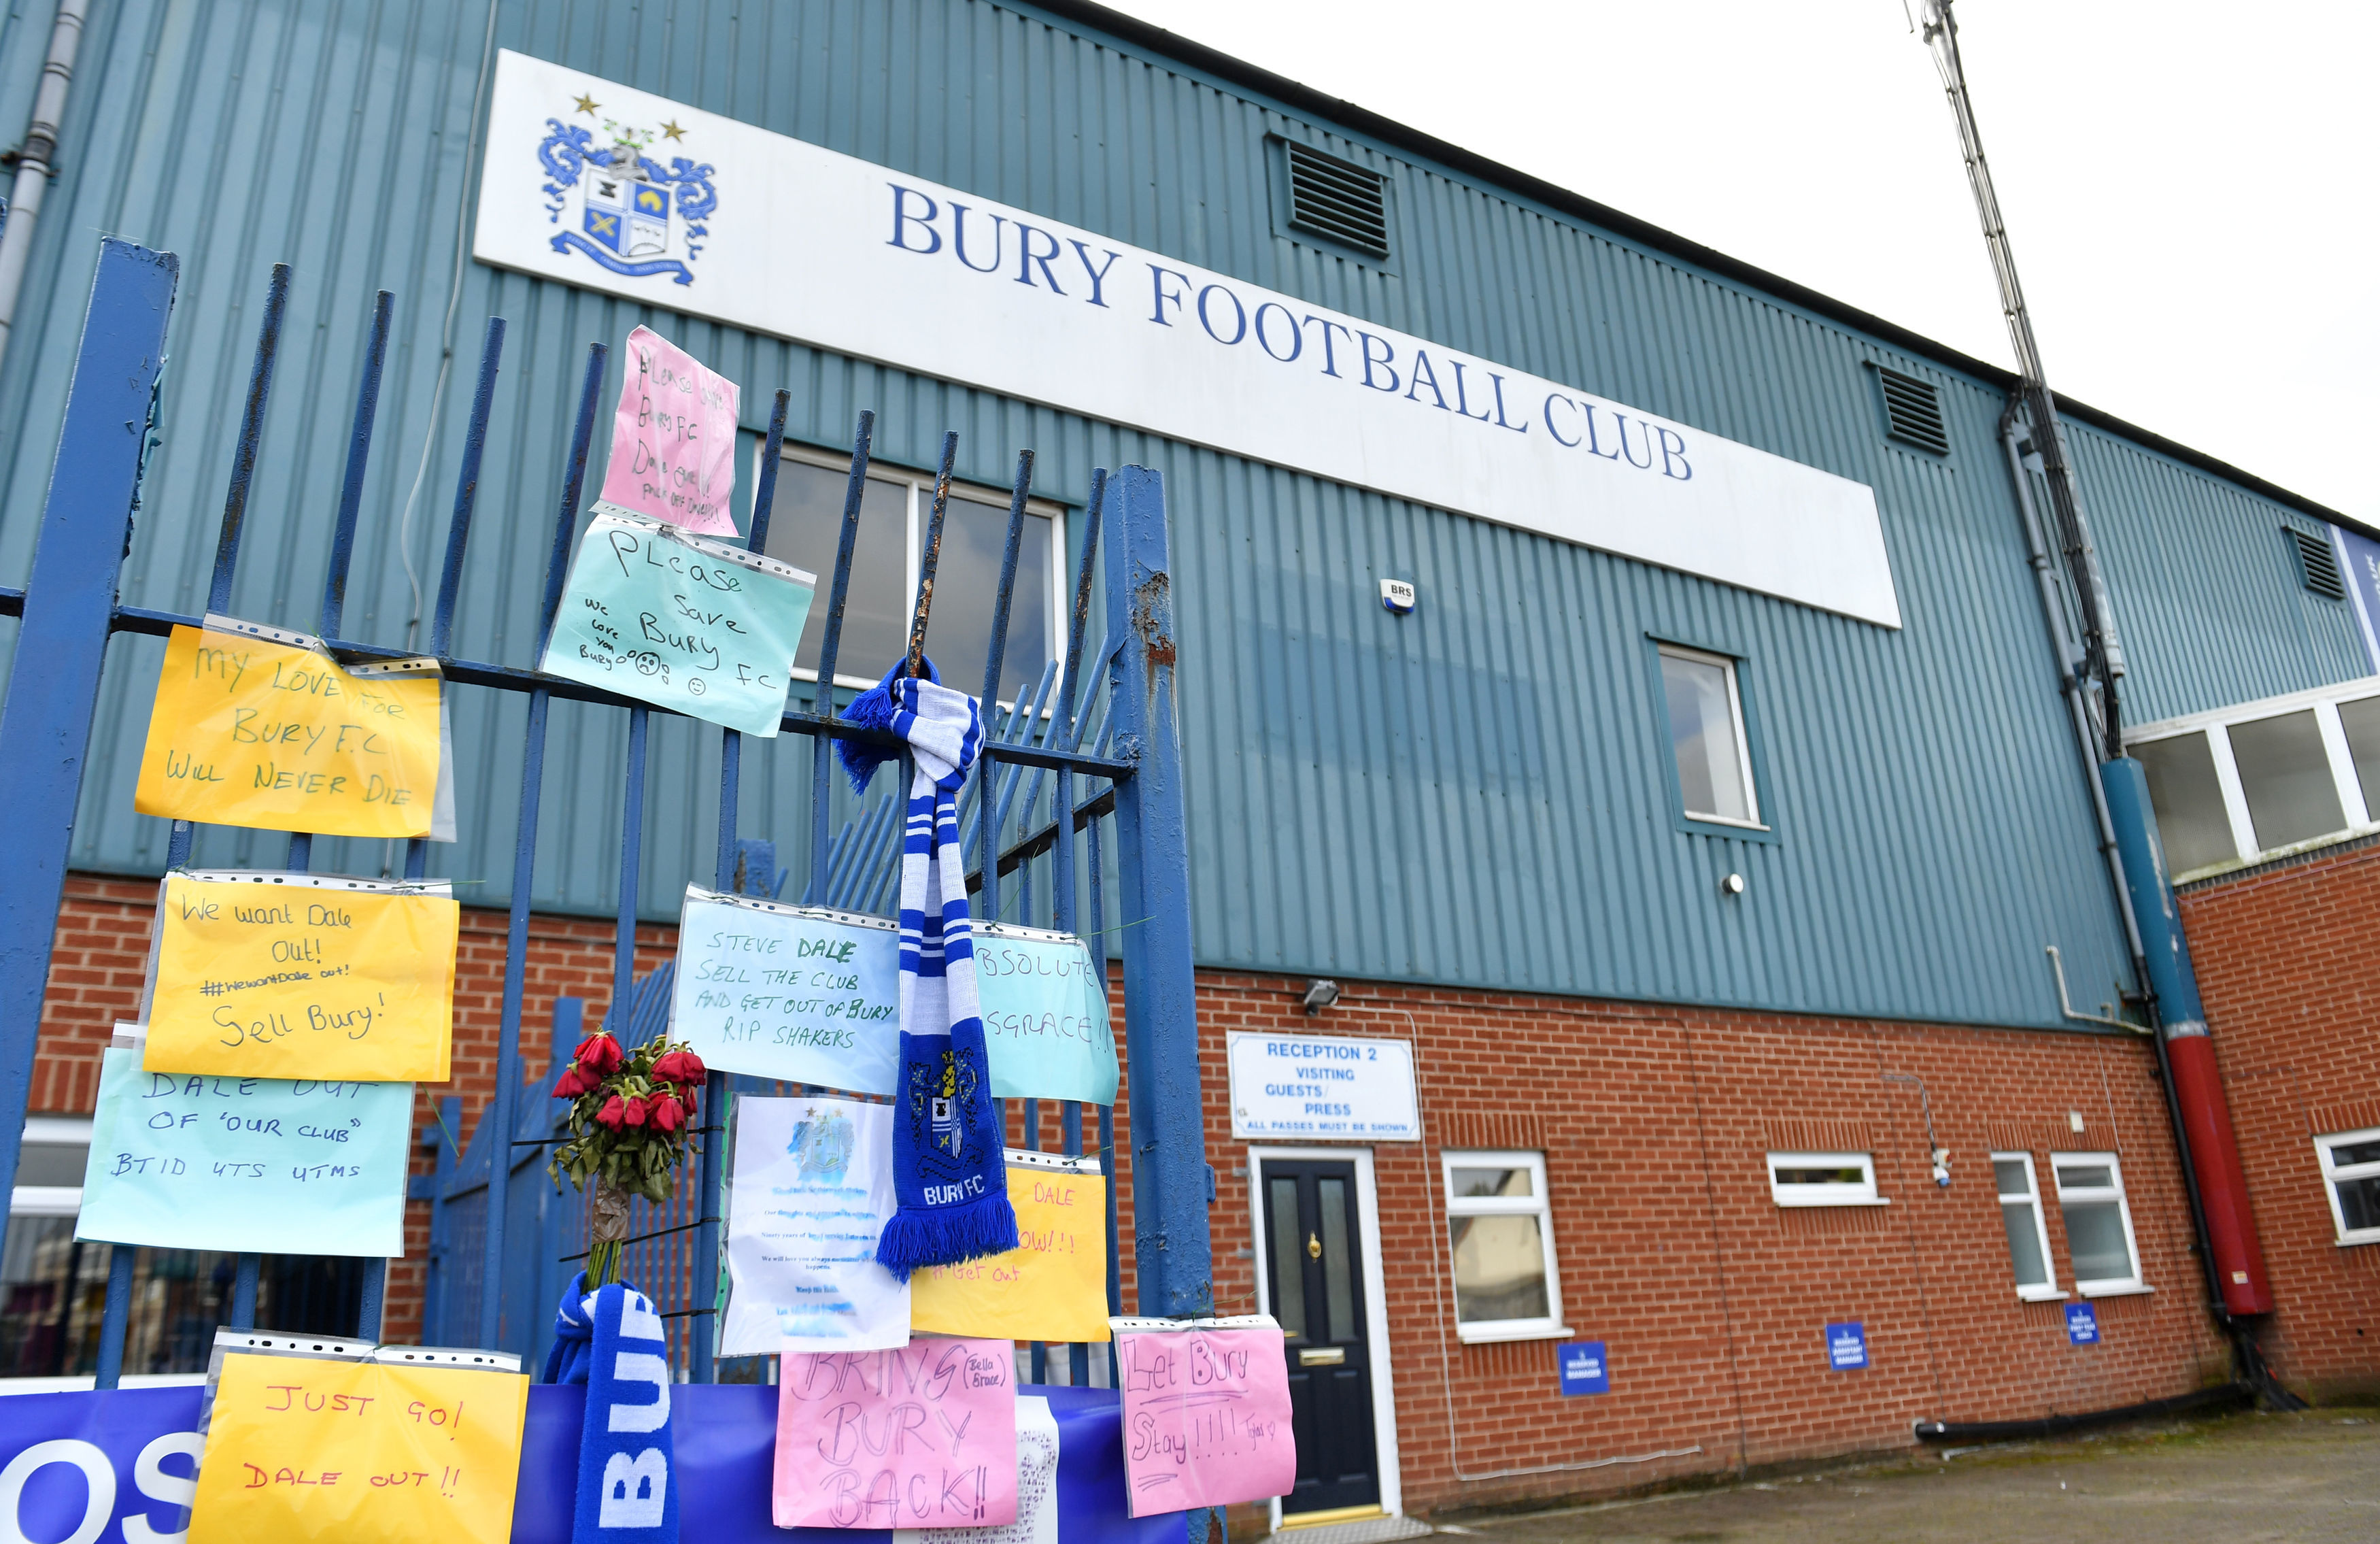 Bury owner says club has been sold as deadline looms